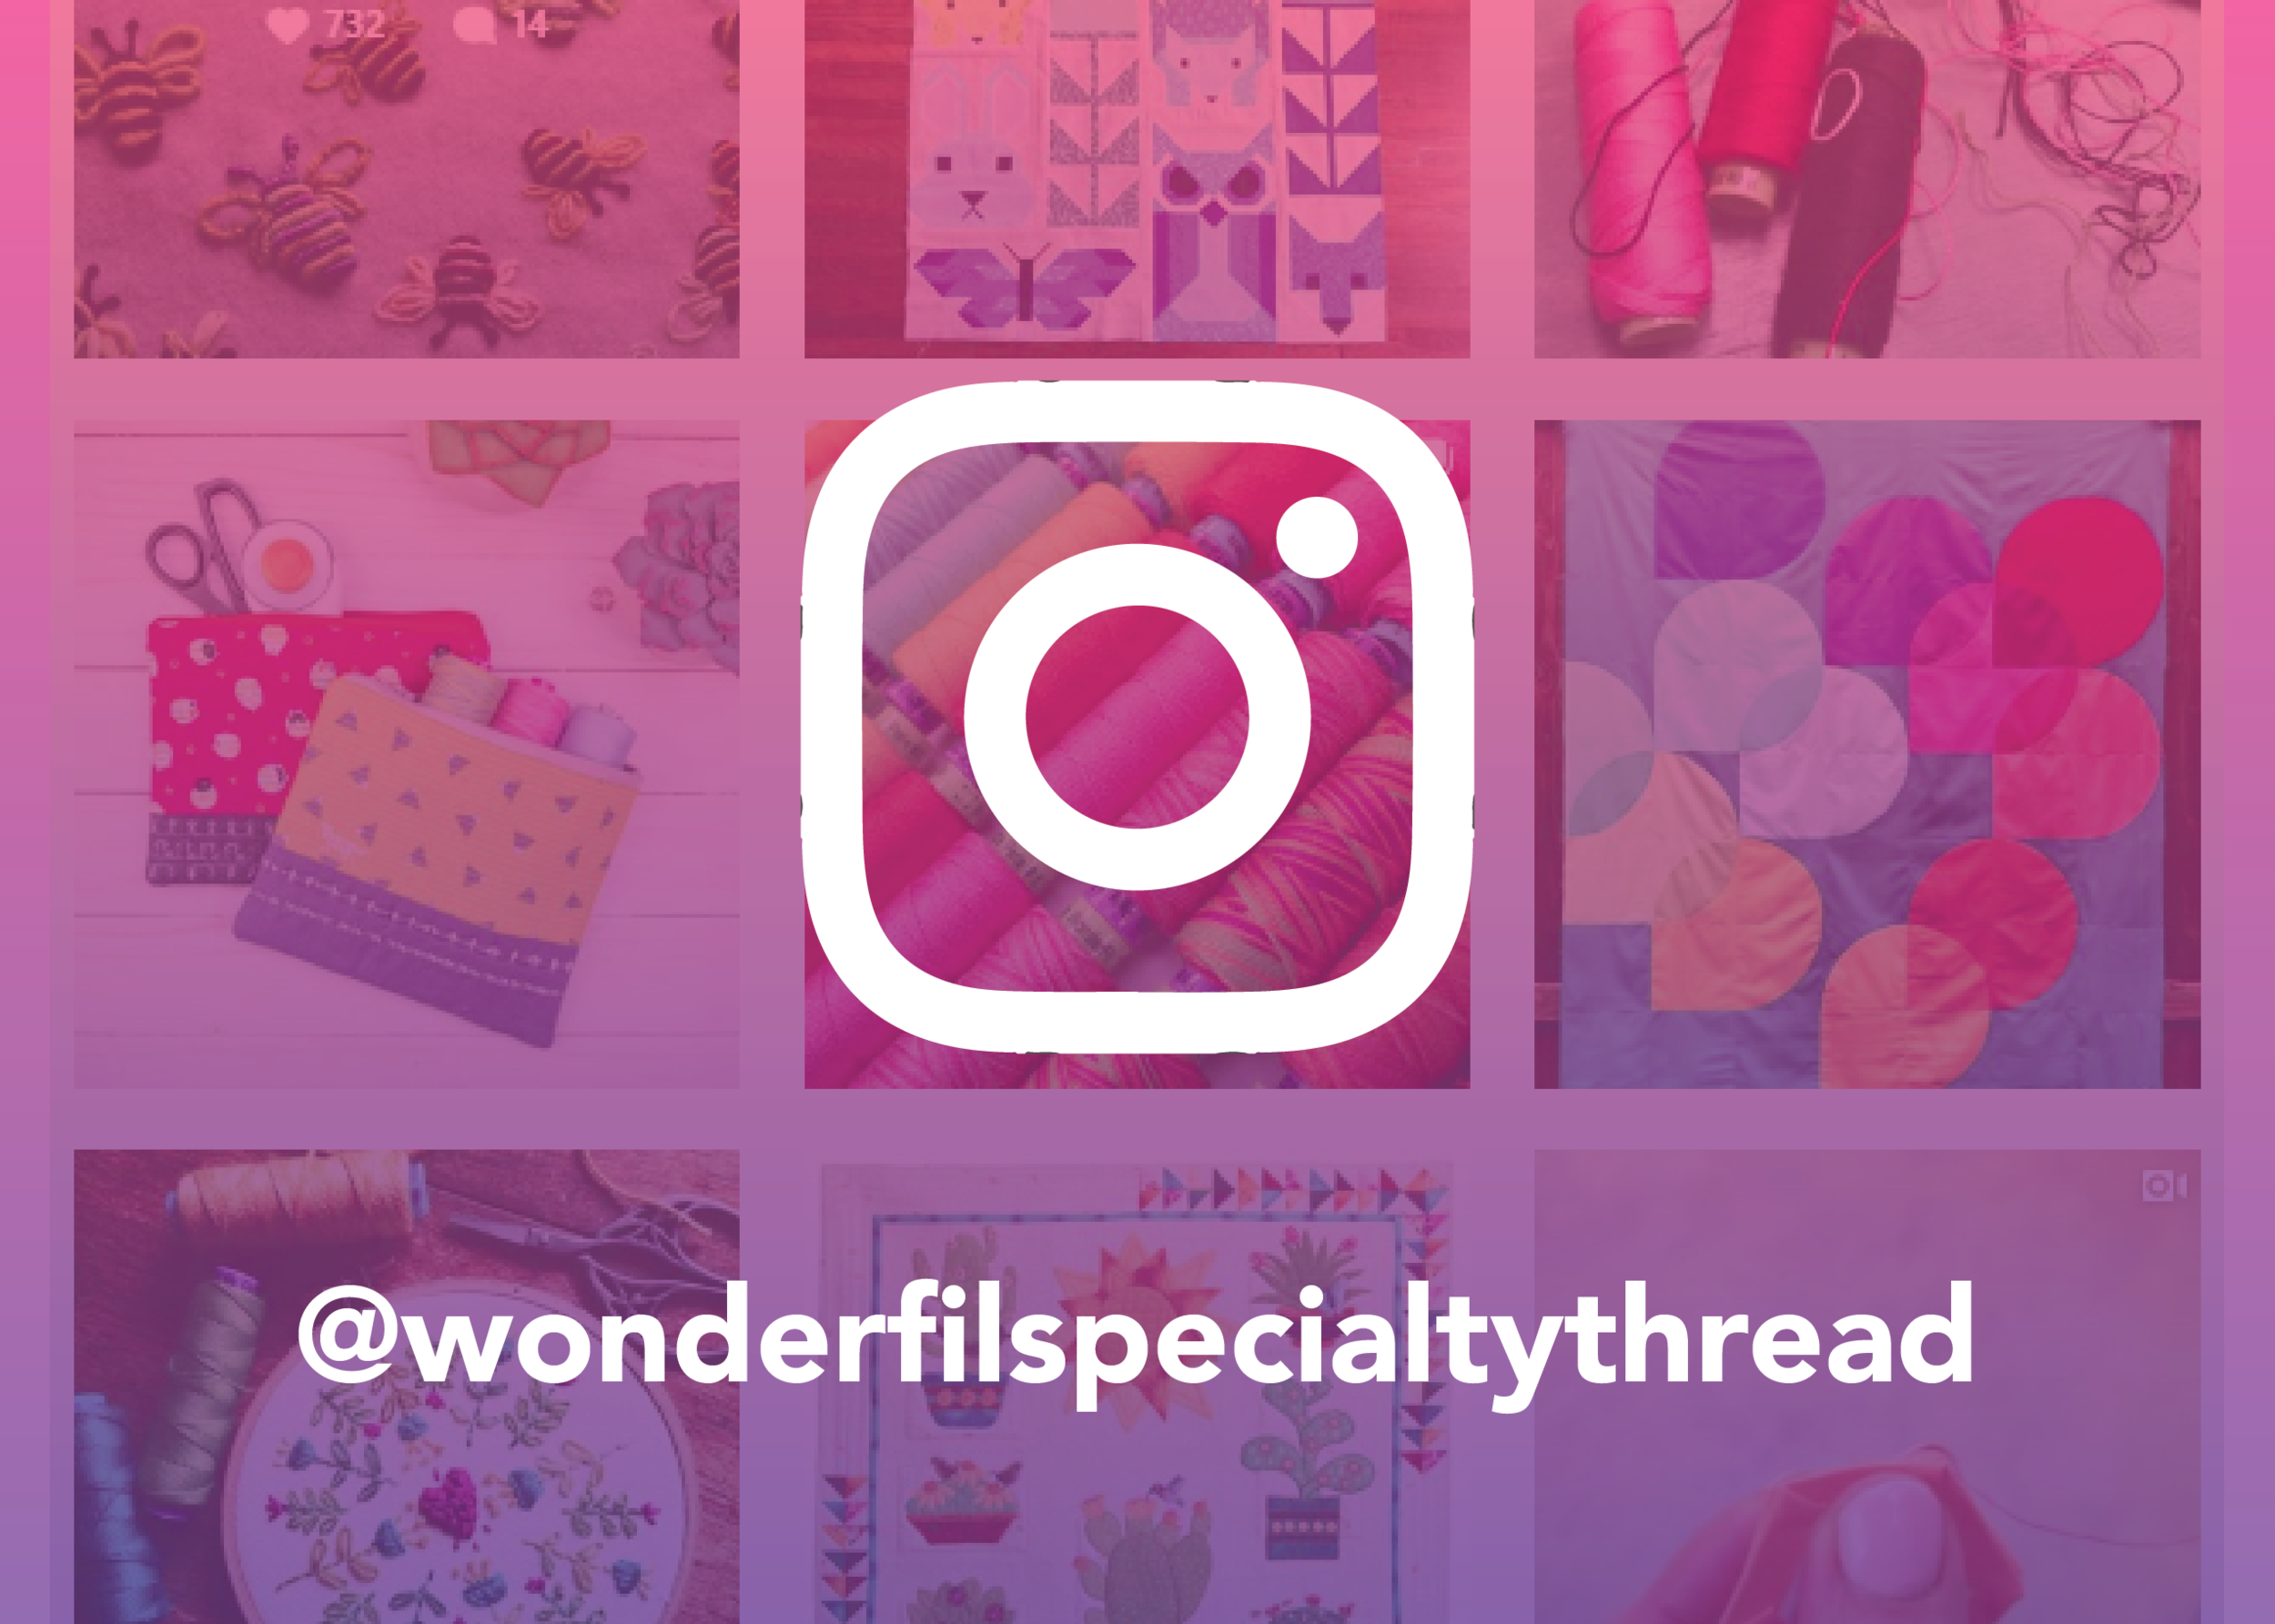 Let's Connect. - Find us on Instagram for inspirational projects and sewing tips.